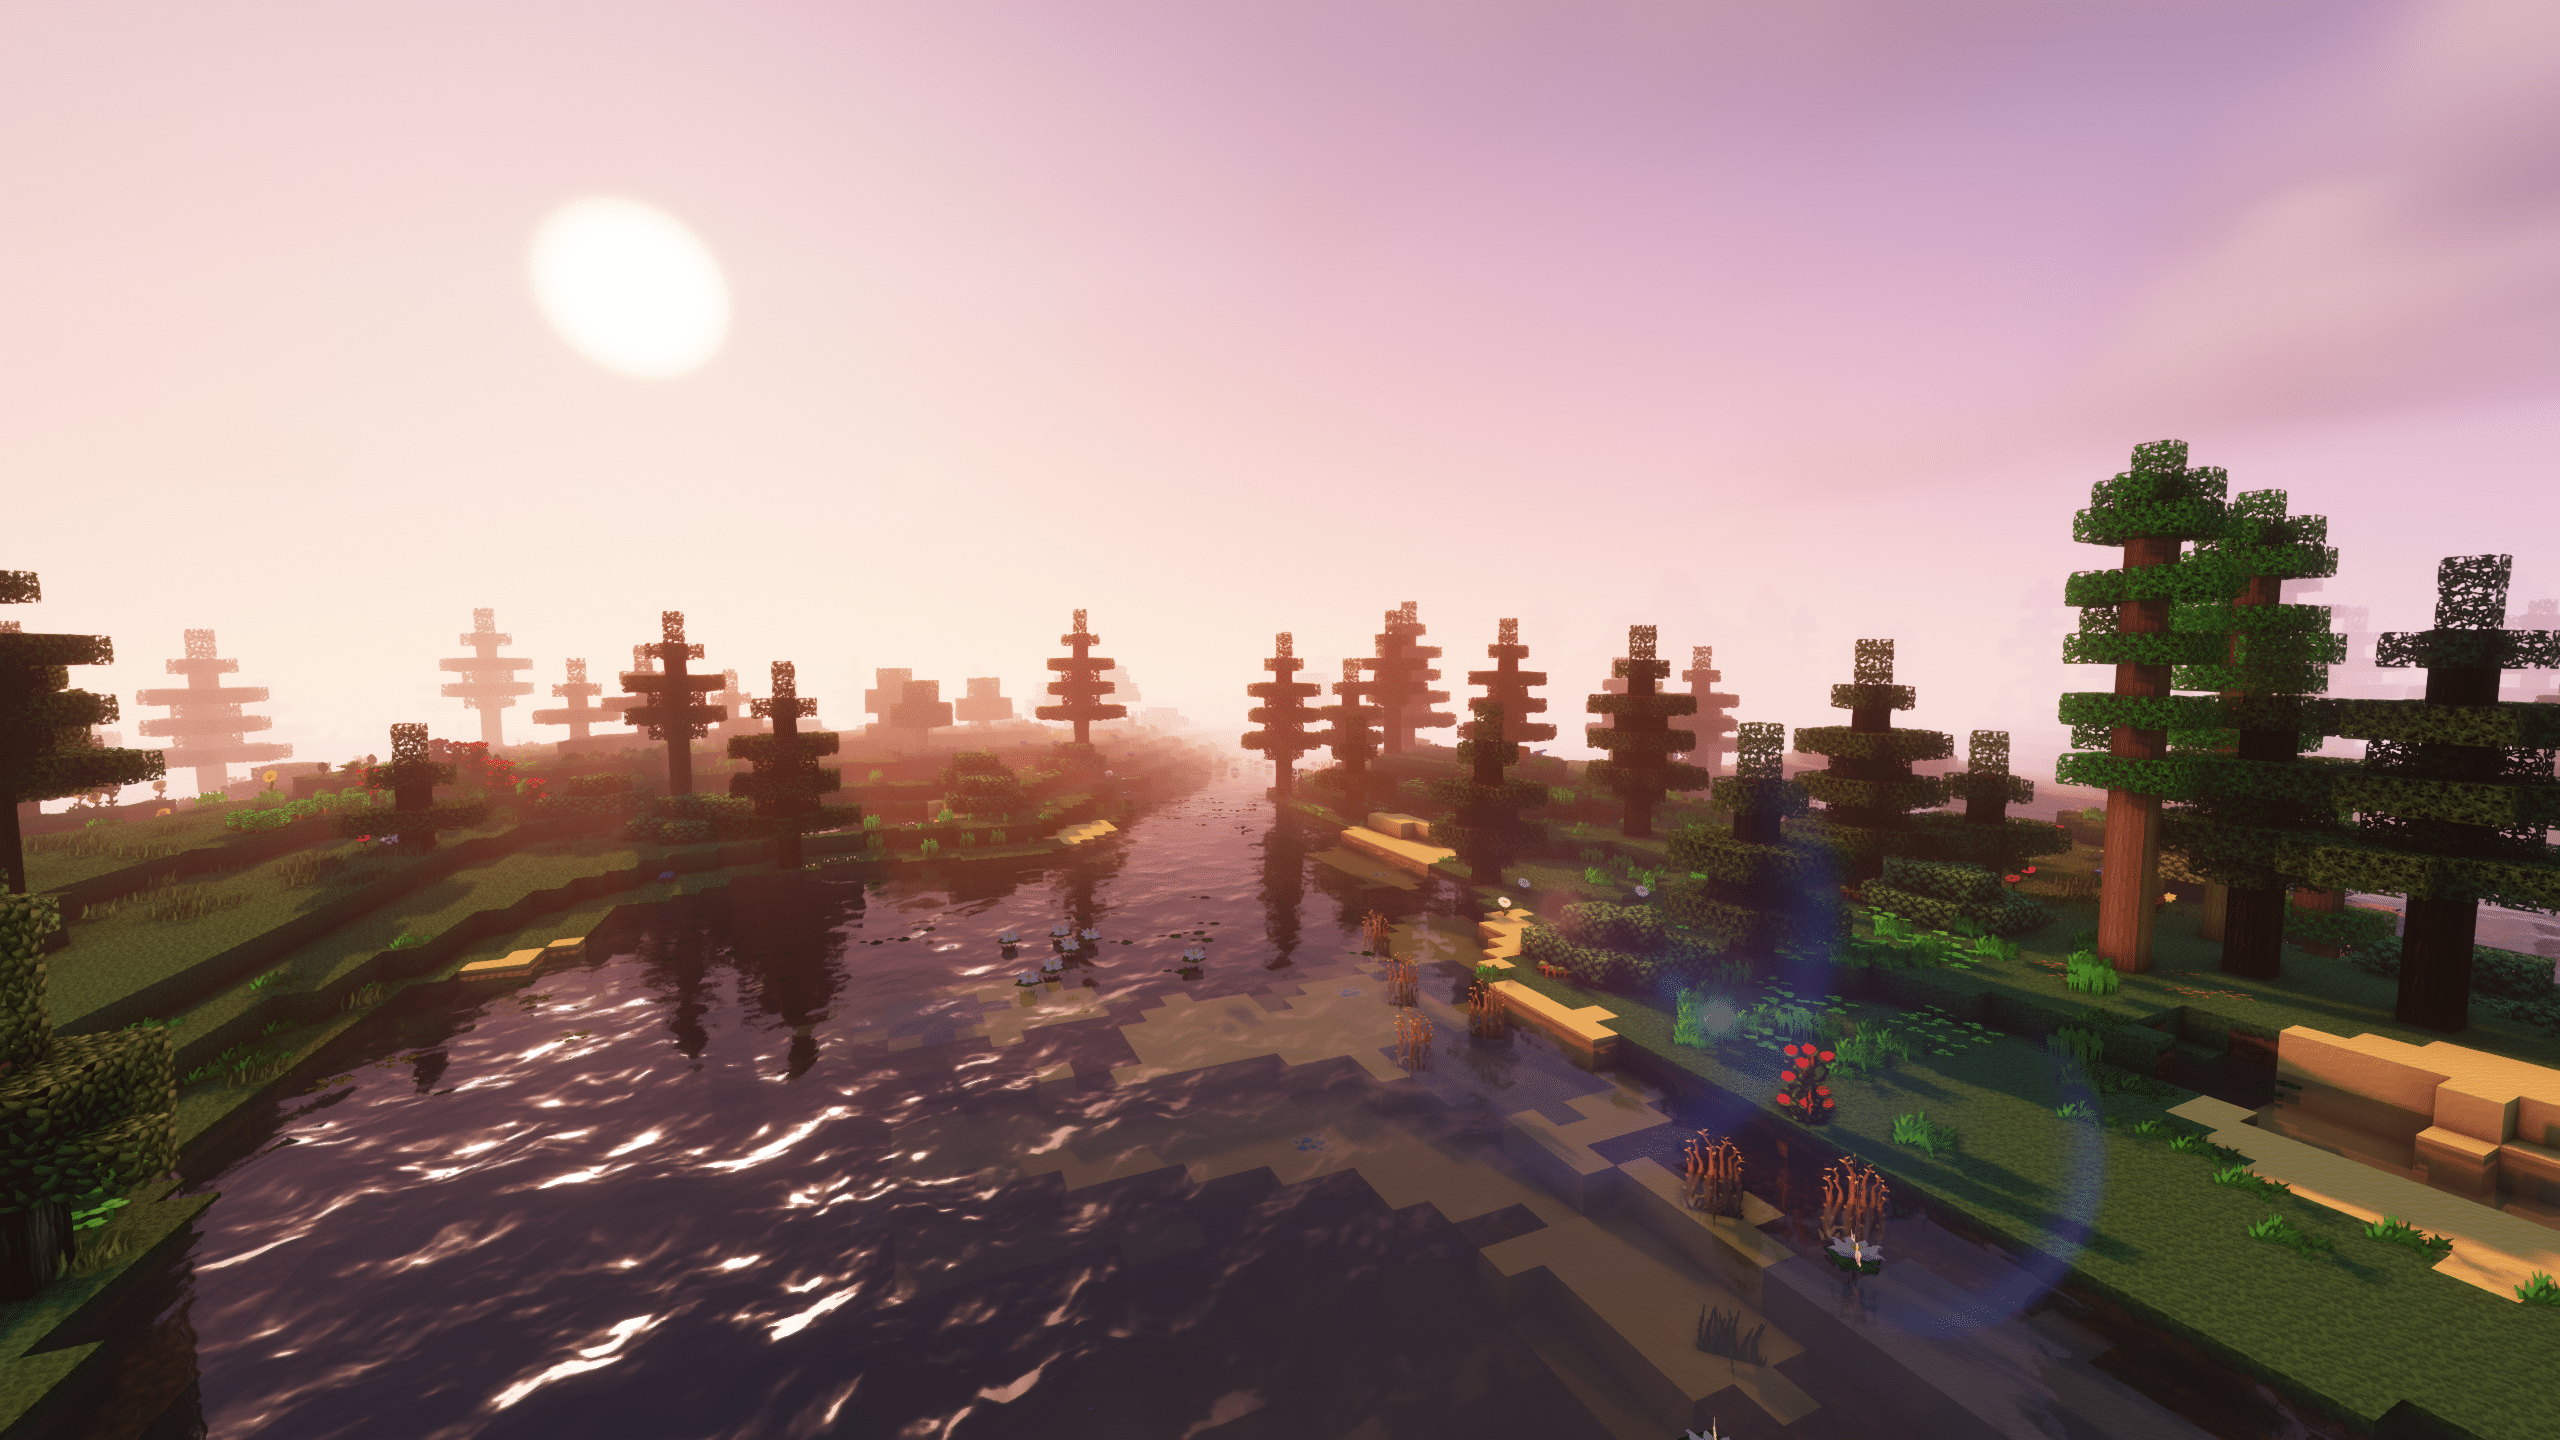 Minecraft Enigmatica 2: Sunrise Over a Lake